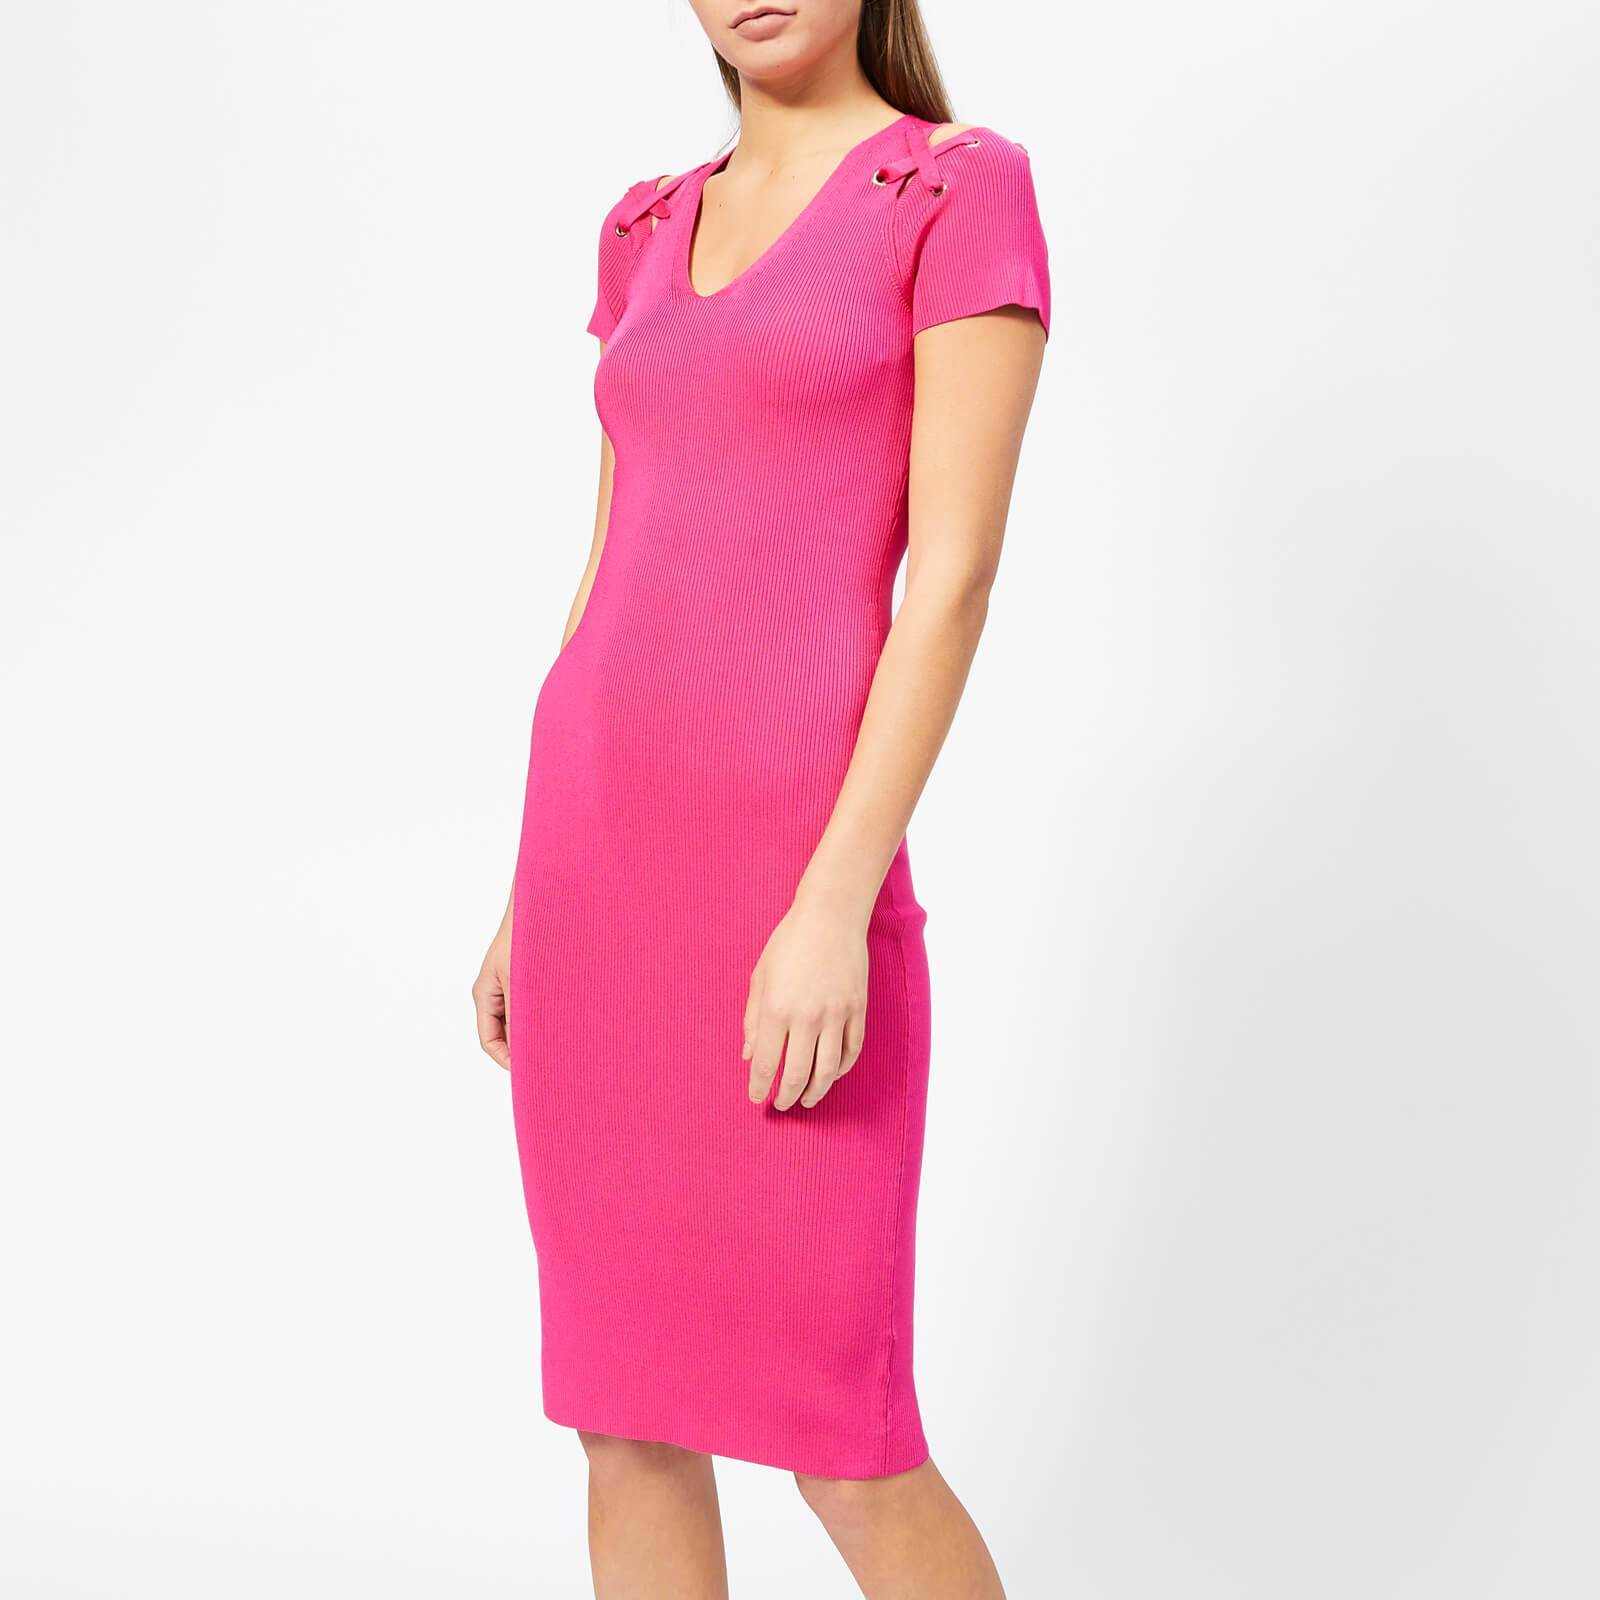 MICHAEL MICHAEL KORS Women's Cut Out Lace Up V Neck Dress - Electric Pink - S - Pink